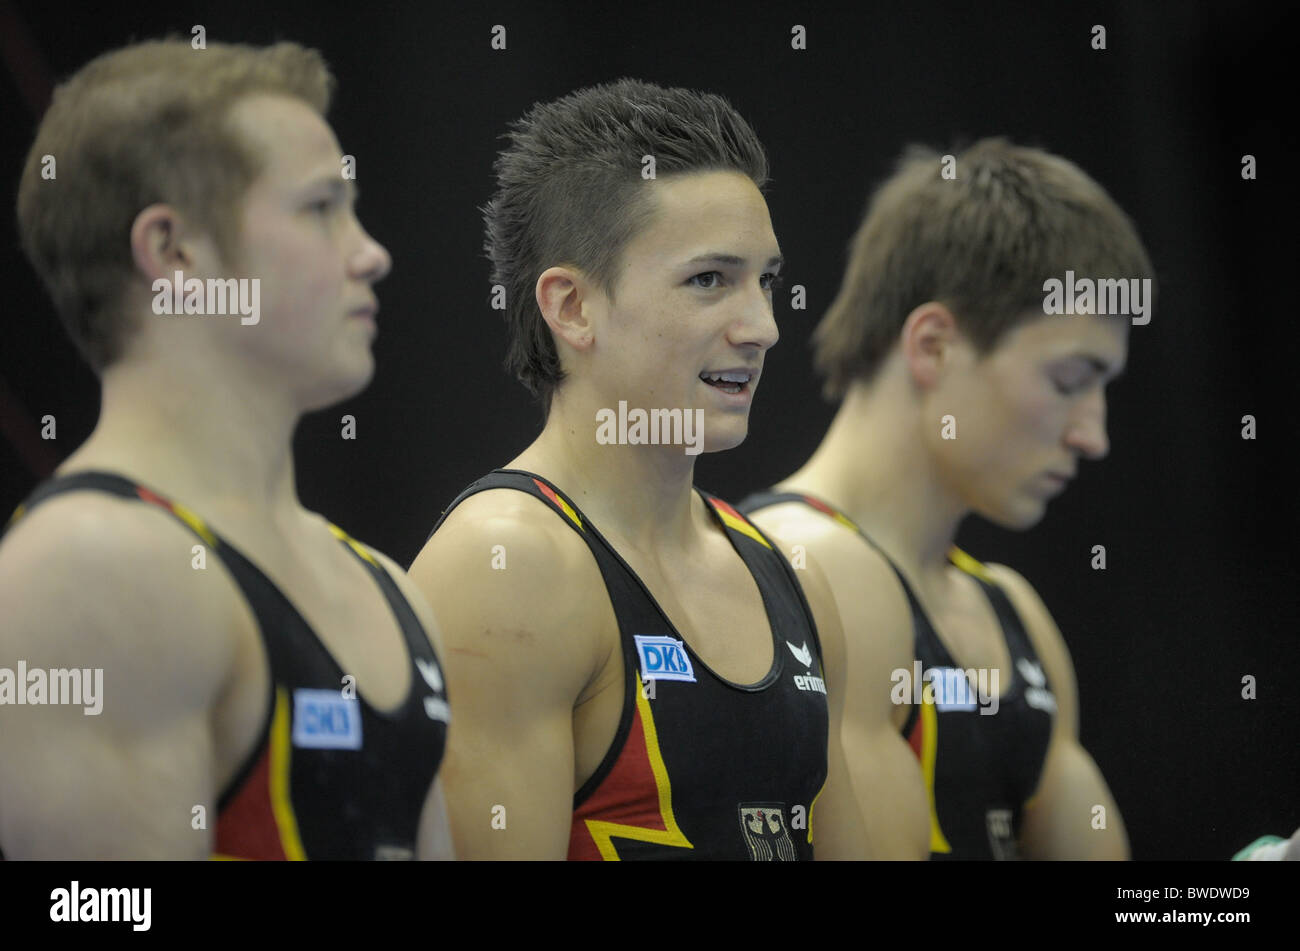 European Gymnastic Championships 2010.Birmingham NIA. Mens Podium Training. Photos by Alan EDwards Stock Photo